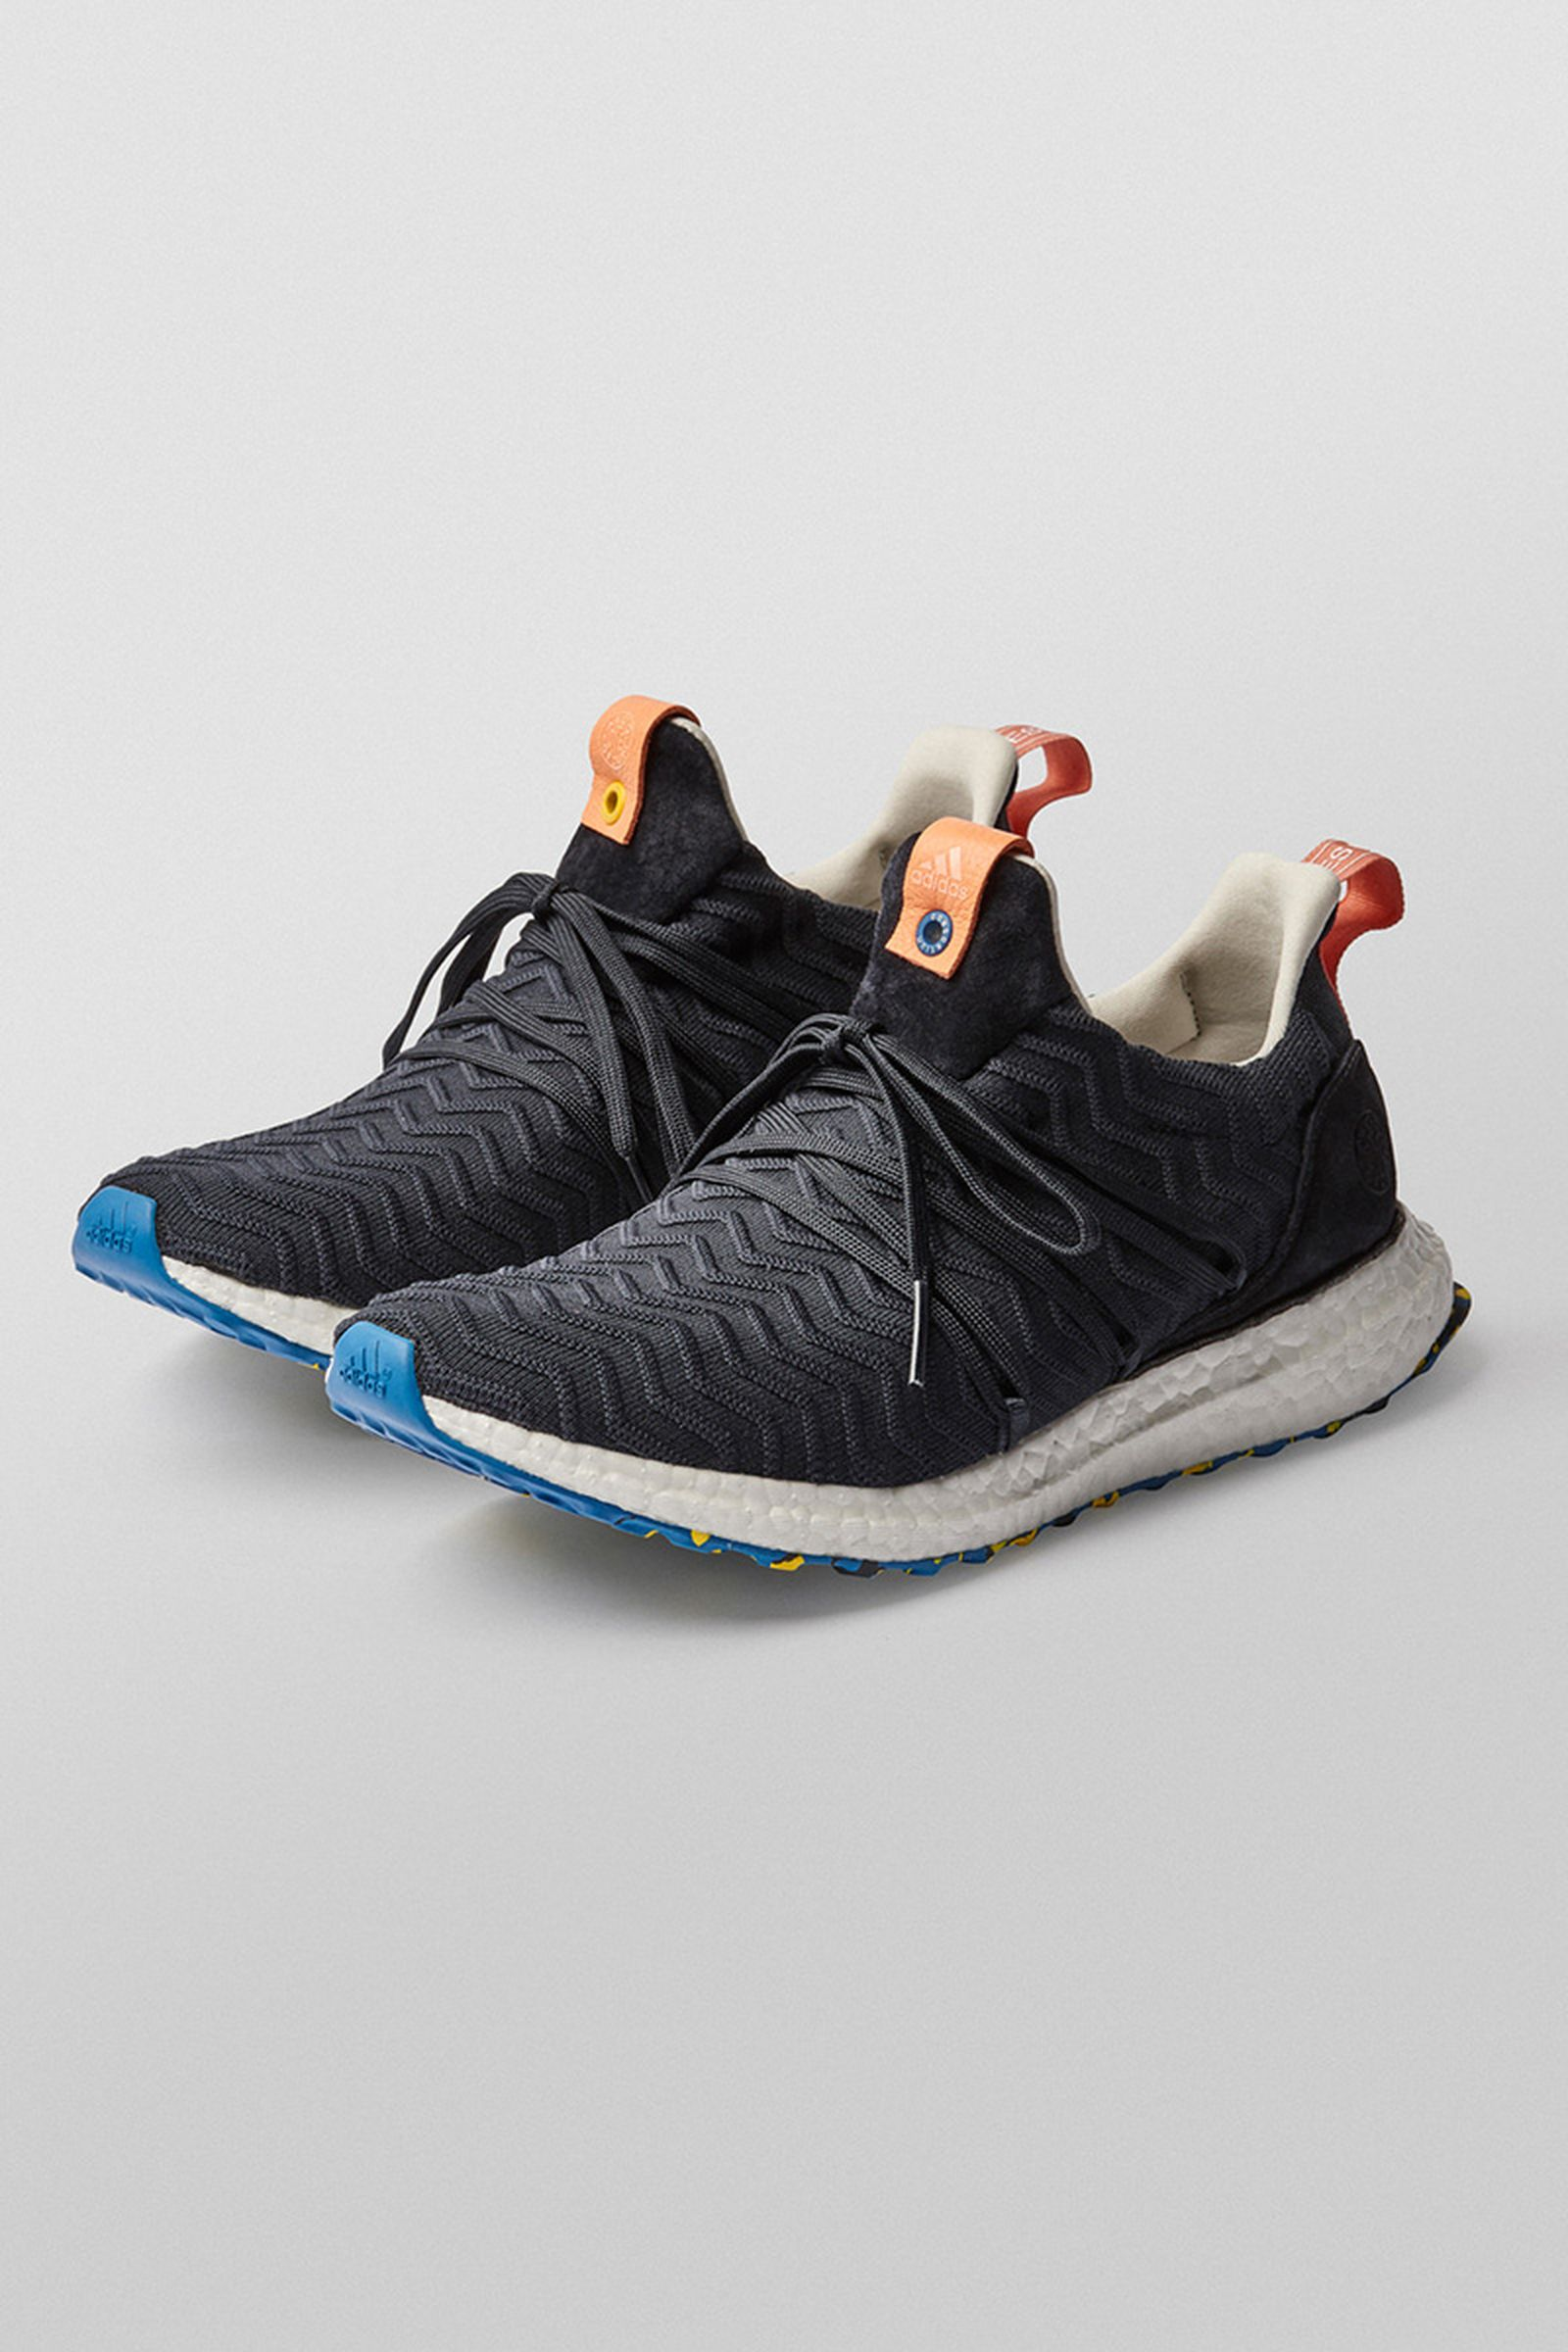 adidas a kind of guise navy ultra boost